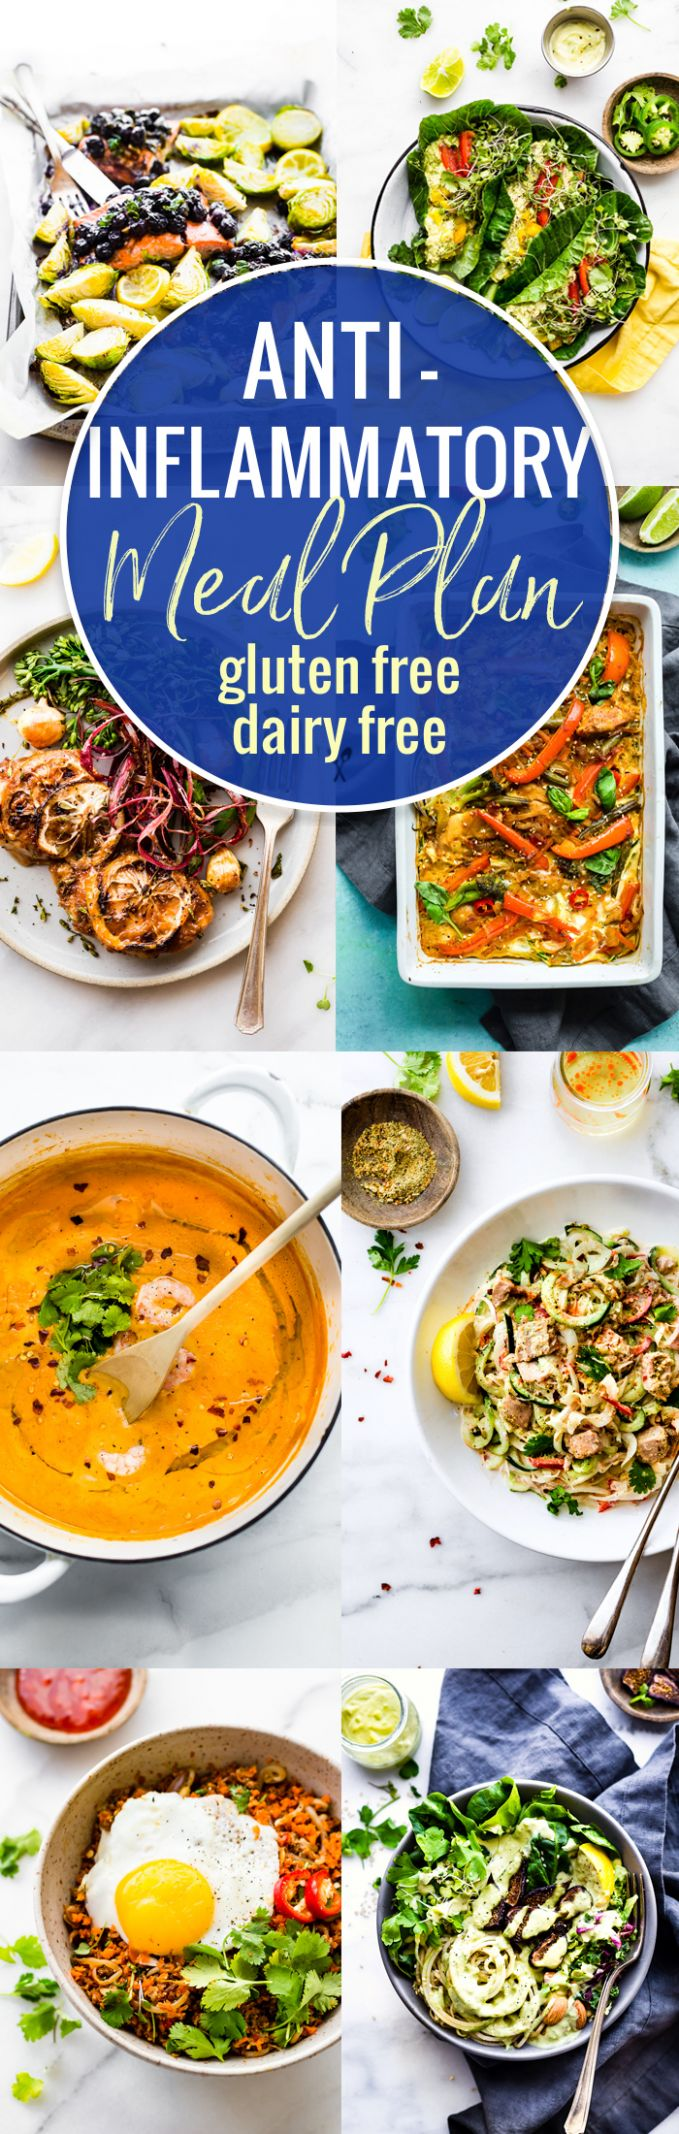 Anti-Inflammatory Meal Plan of Dairy-Free and Gluten-Free Recipes - Dinner Recipes Without Dairy